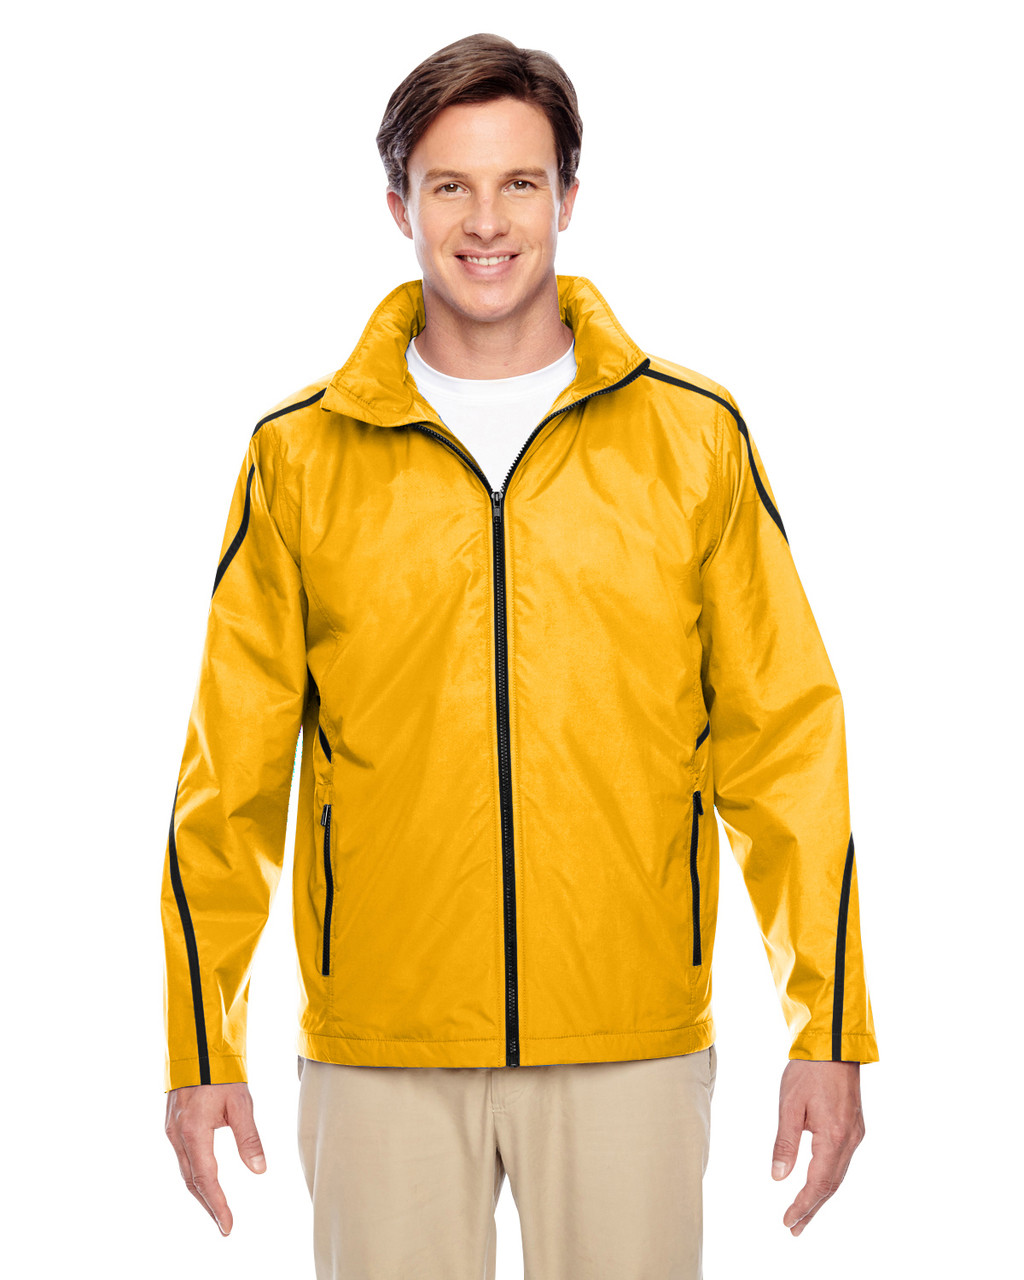 Sport Athletic Gold TT72 Team 365 Conquest Jacket with Fleece Lining